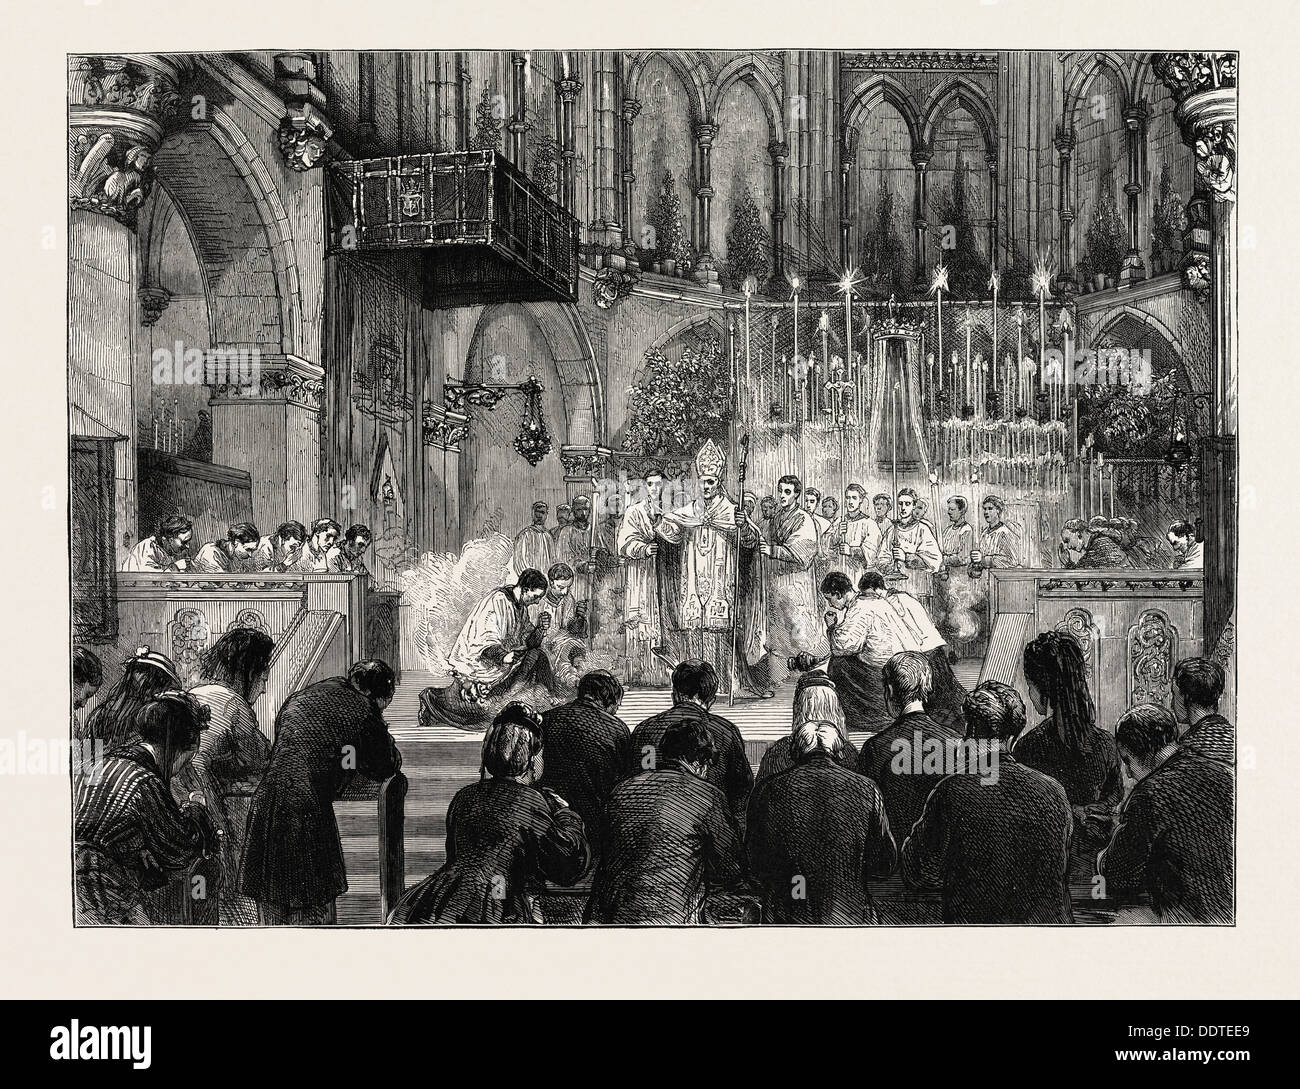 THE ENGLISH PILGRIMAGE TO PARAY-LE-MONIAL,FRANCE: THE BENEDICTION AT THE PRO-CATHEDRAL, SOUTH KENSINGTON, UK, 1873 - Stock Image